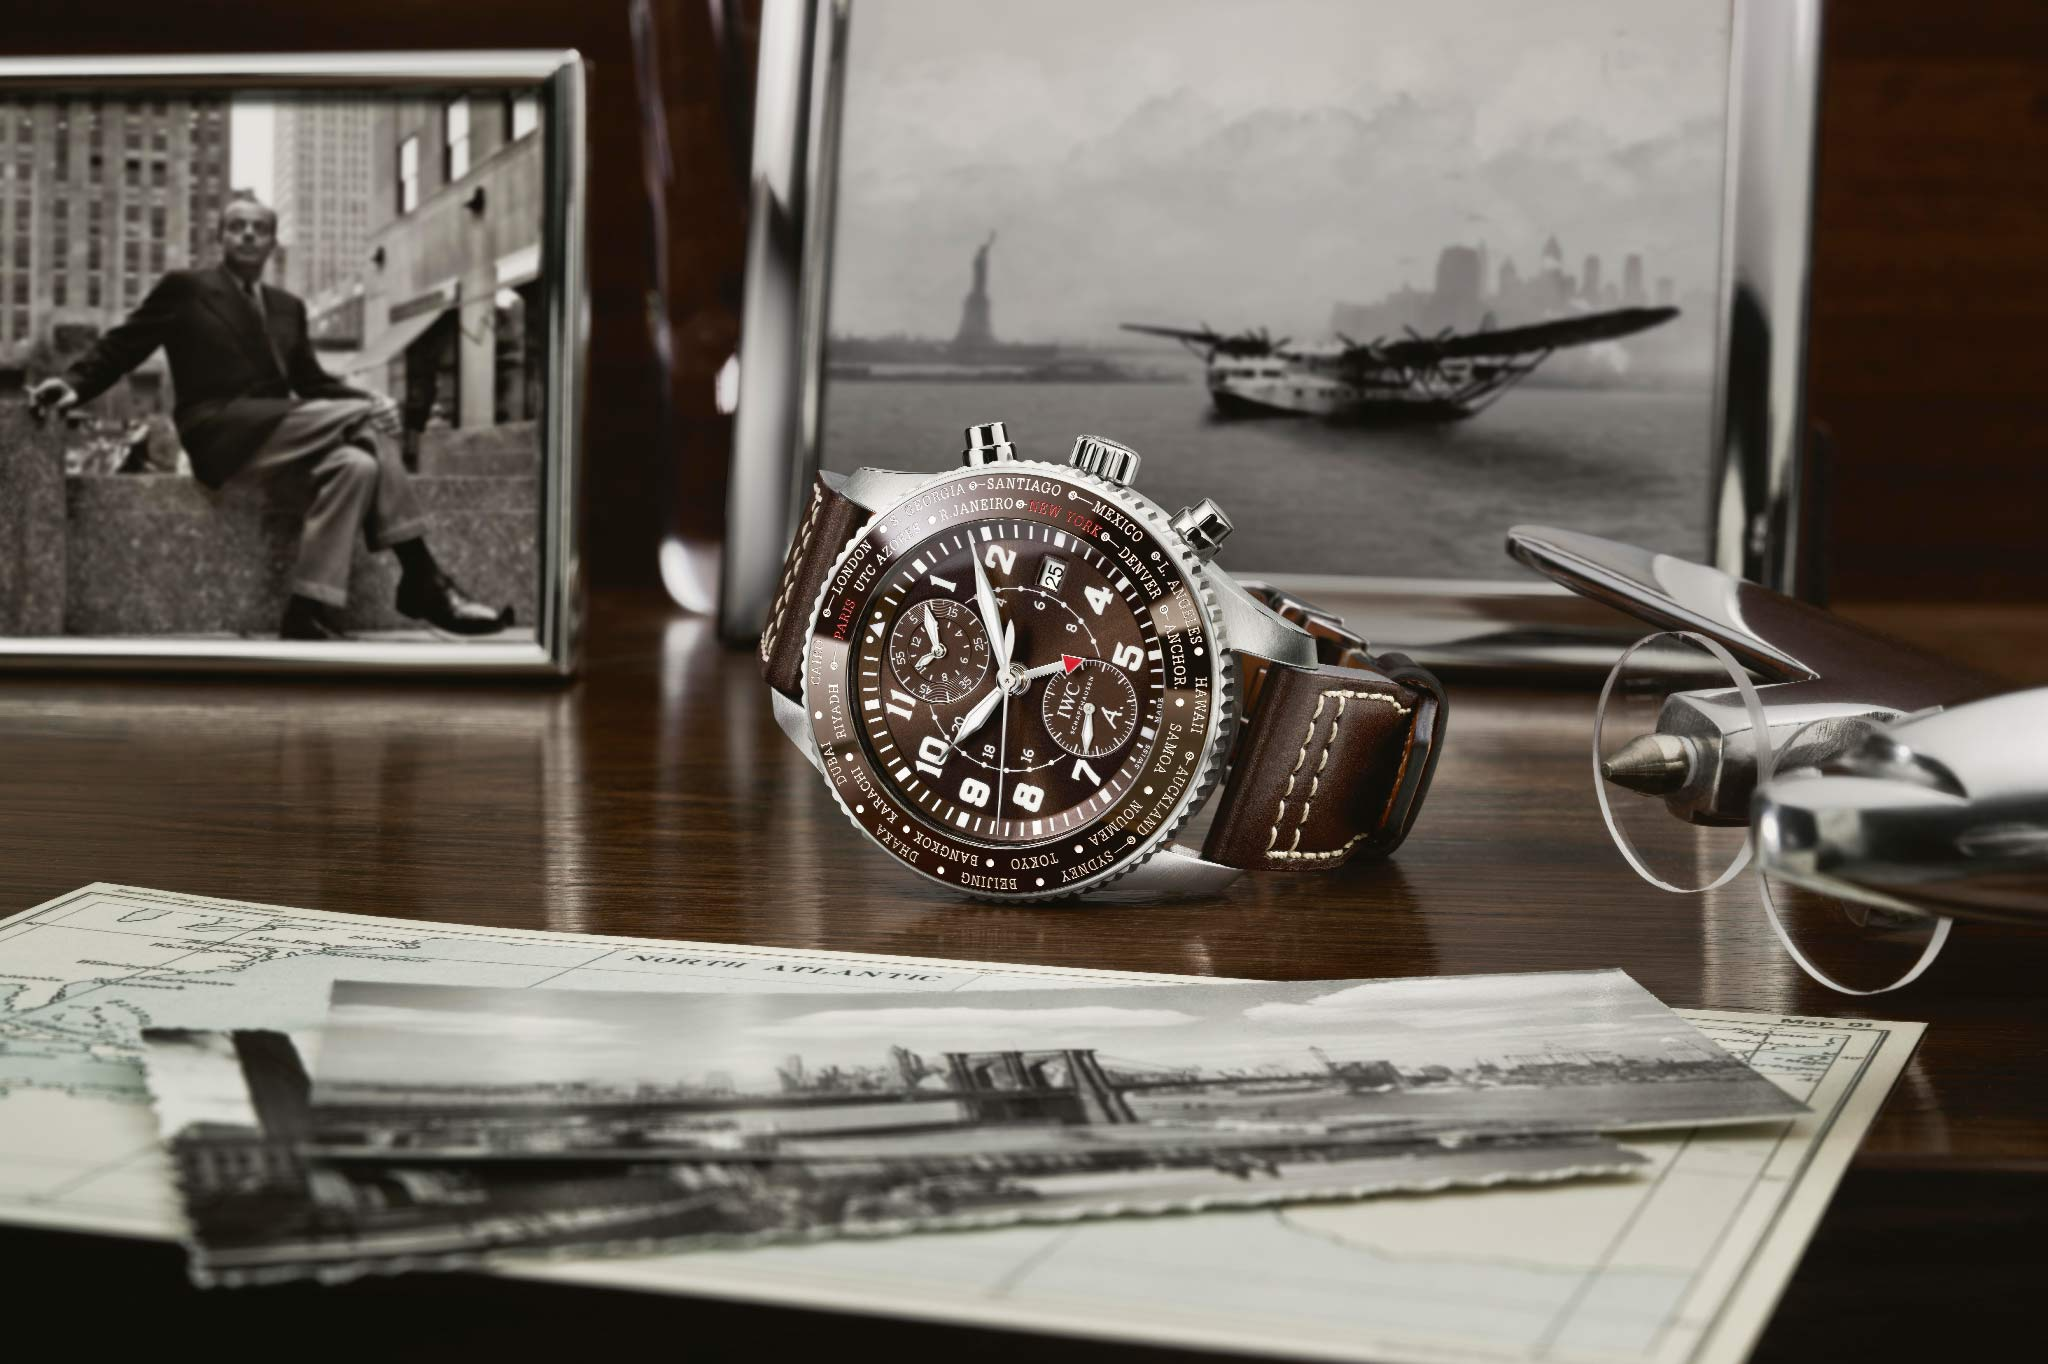 IWC Fliegeruhren GMT Pilot's Watch Timezoner Chronograph Edition 80 Years Flight to New York